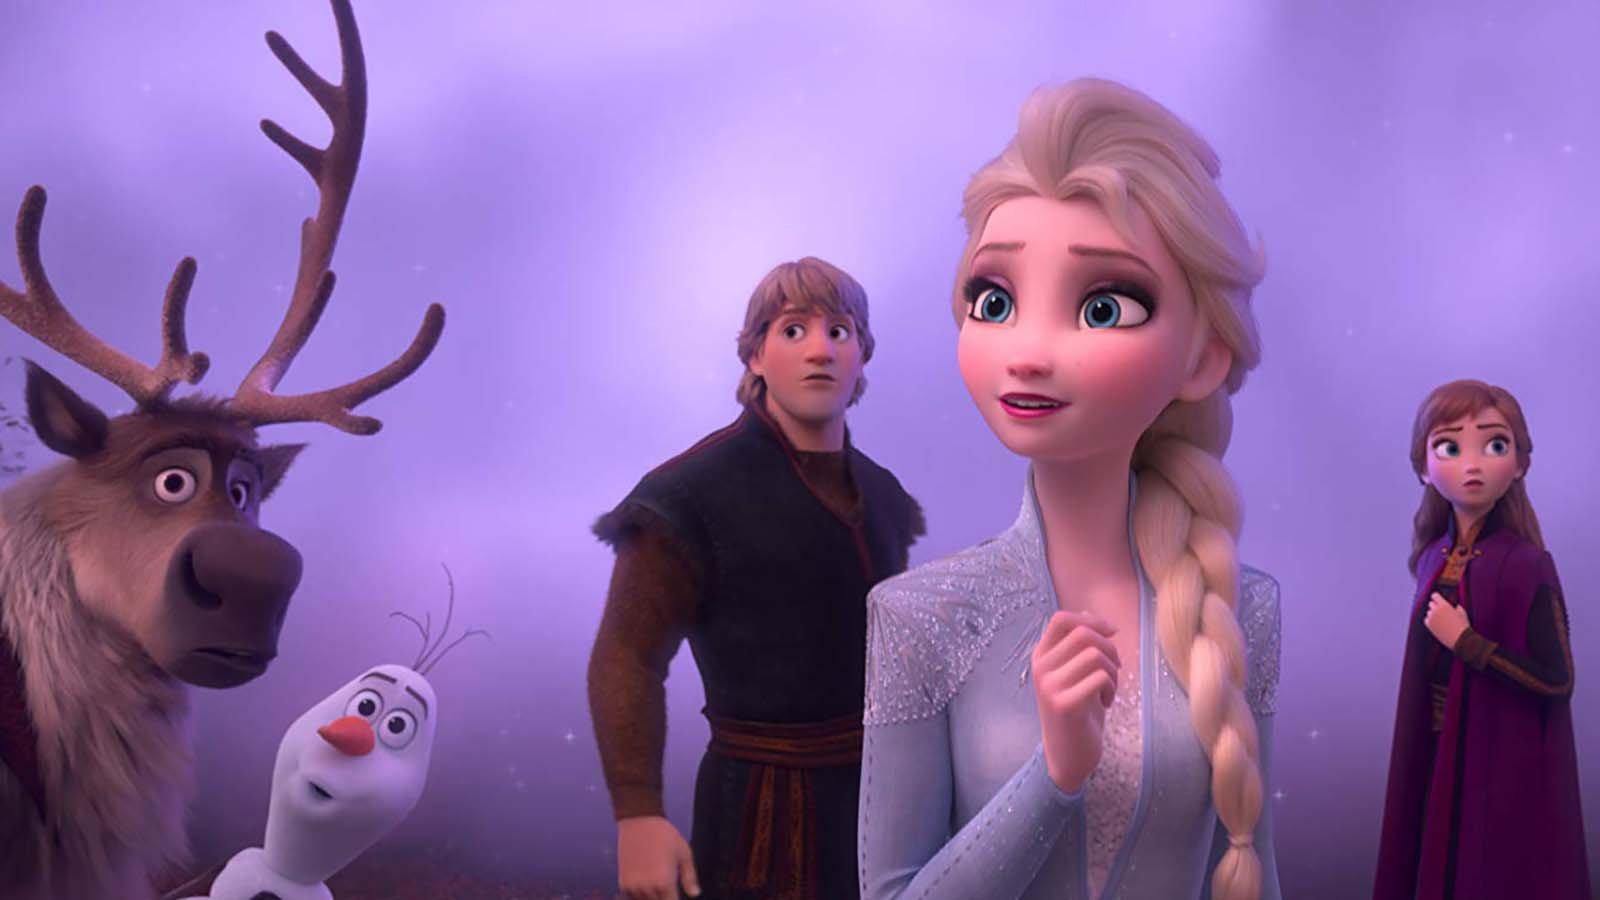 """""""Frozen 2,"""" the studio's animated sequel to the 2013 phenomenon, brought in an estimated $127 million in North America this weekend. (Credit: Disney via CNN Wire)"""